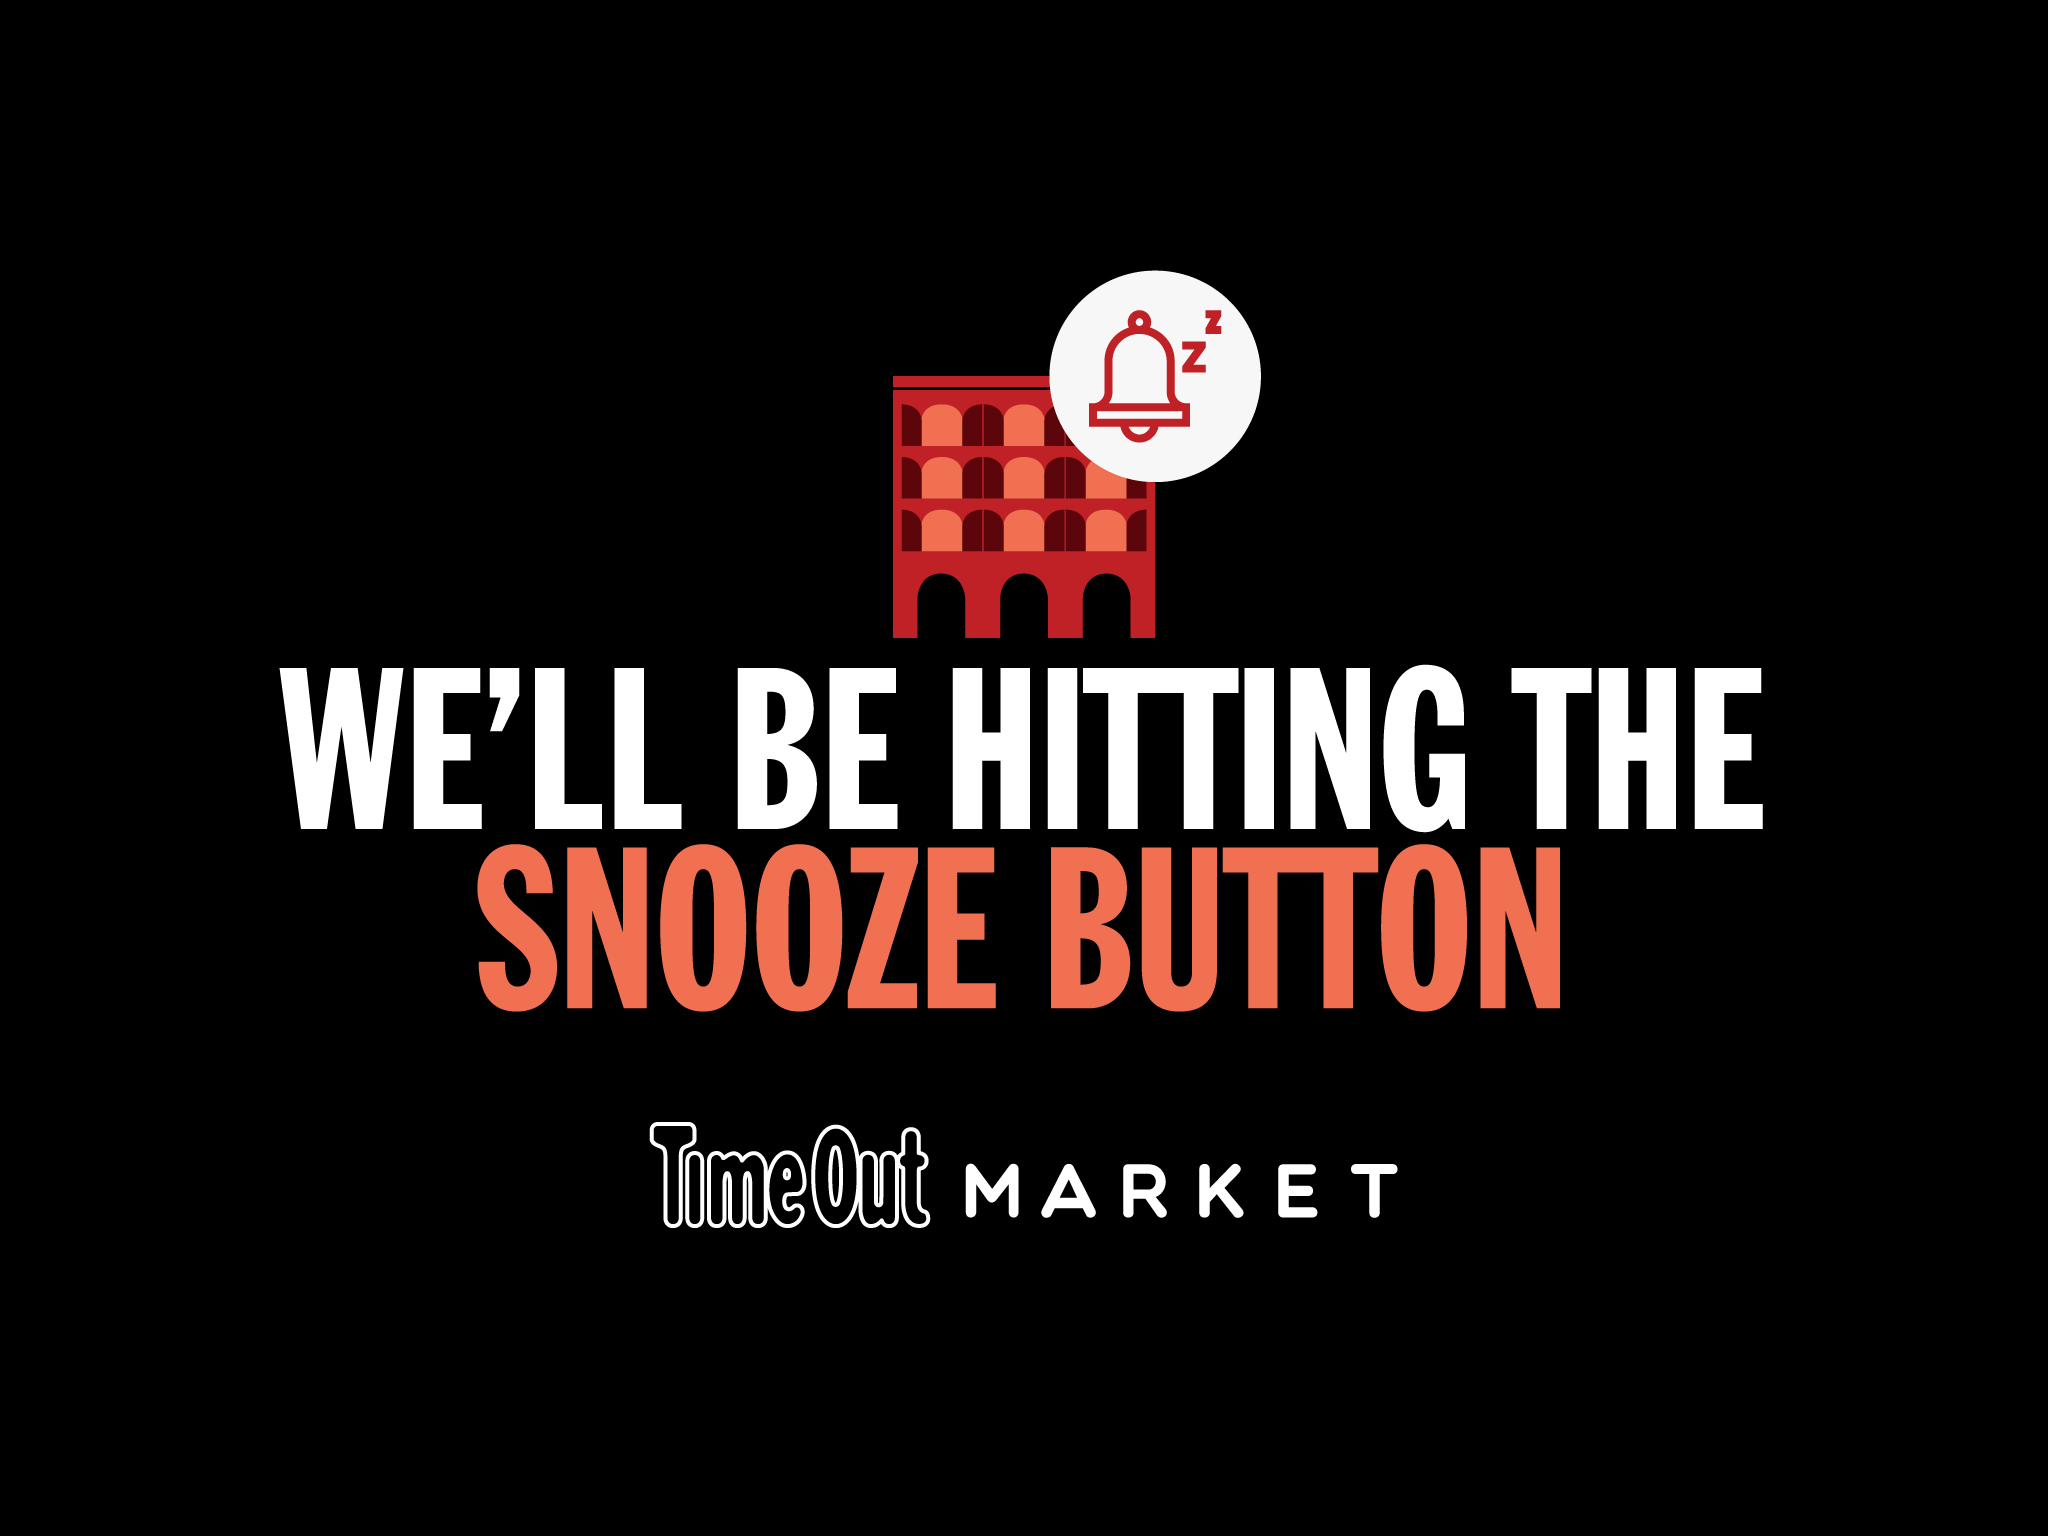 snooze button with text saying we'll be hitting the snooze button